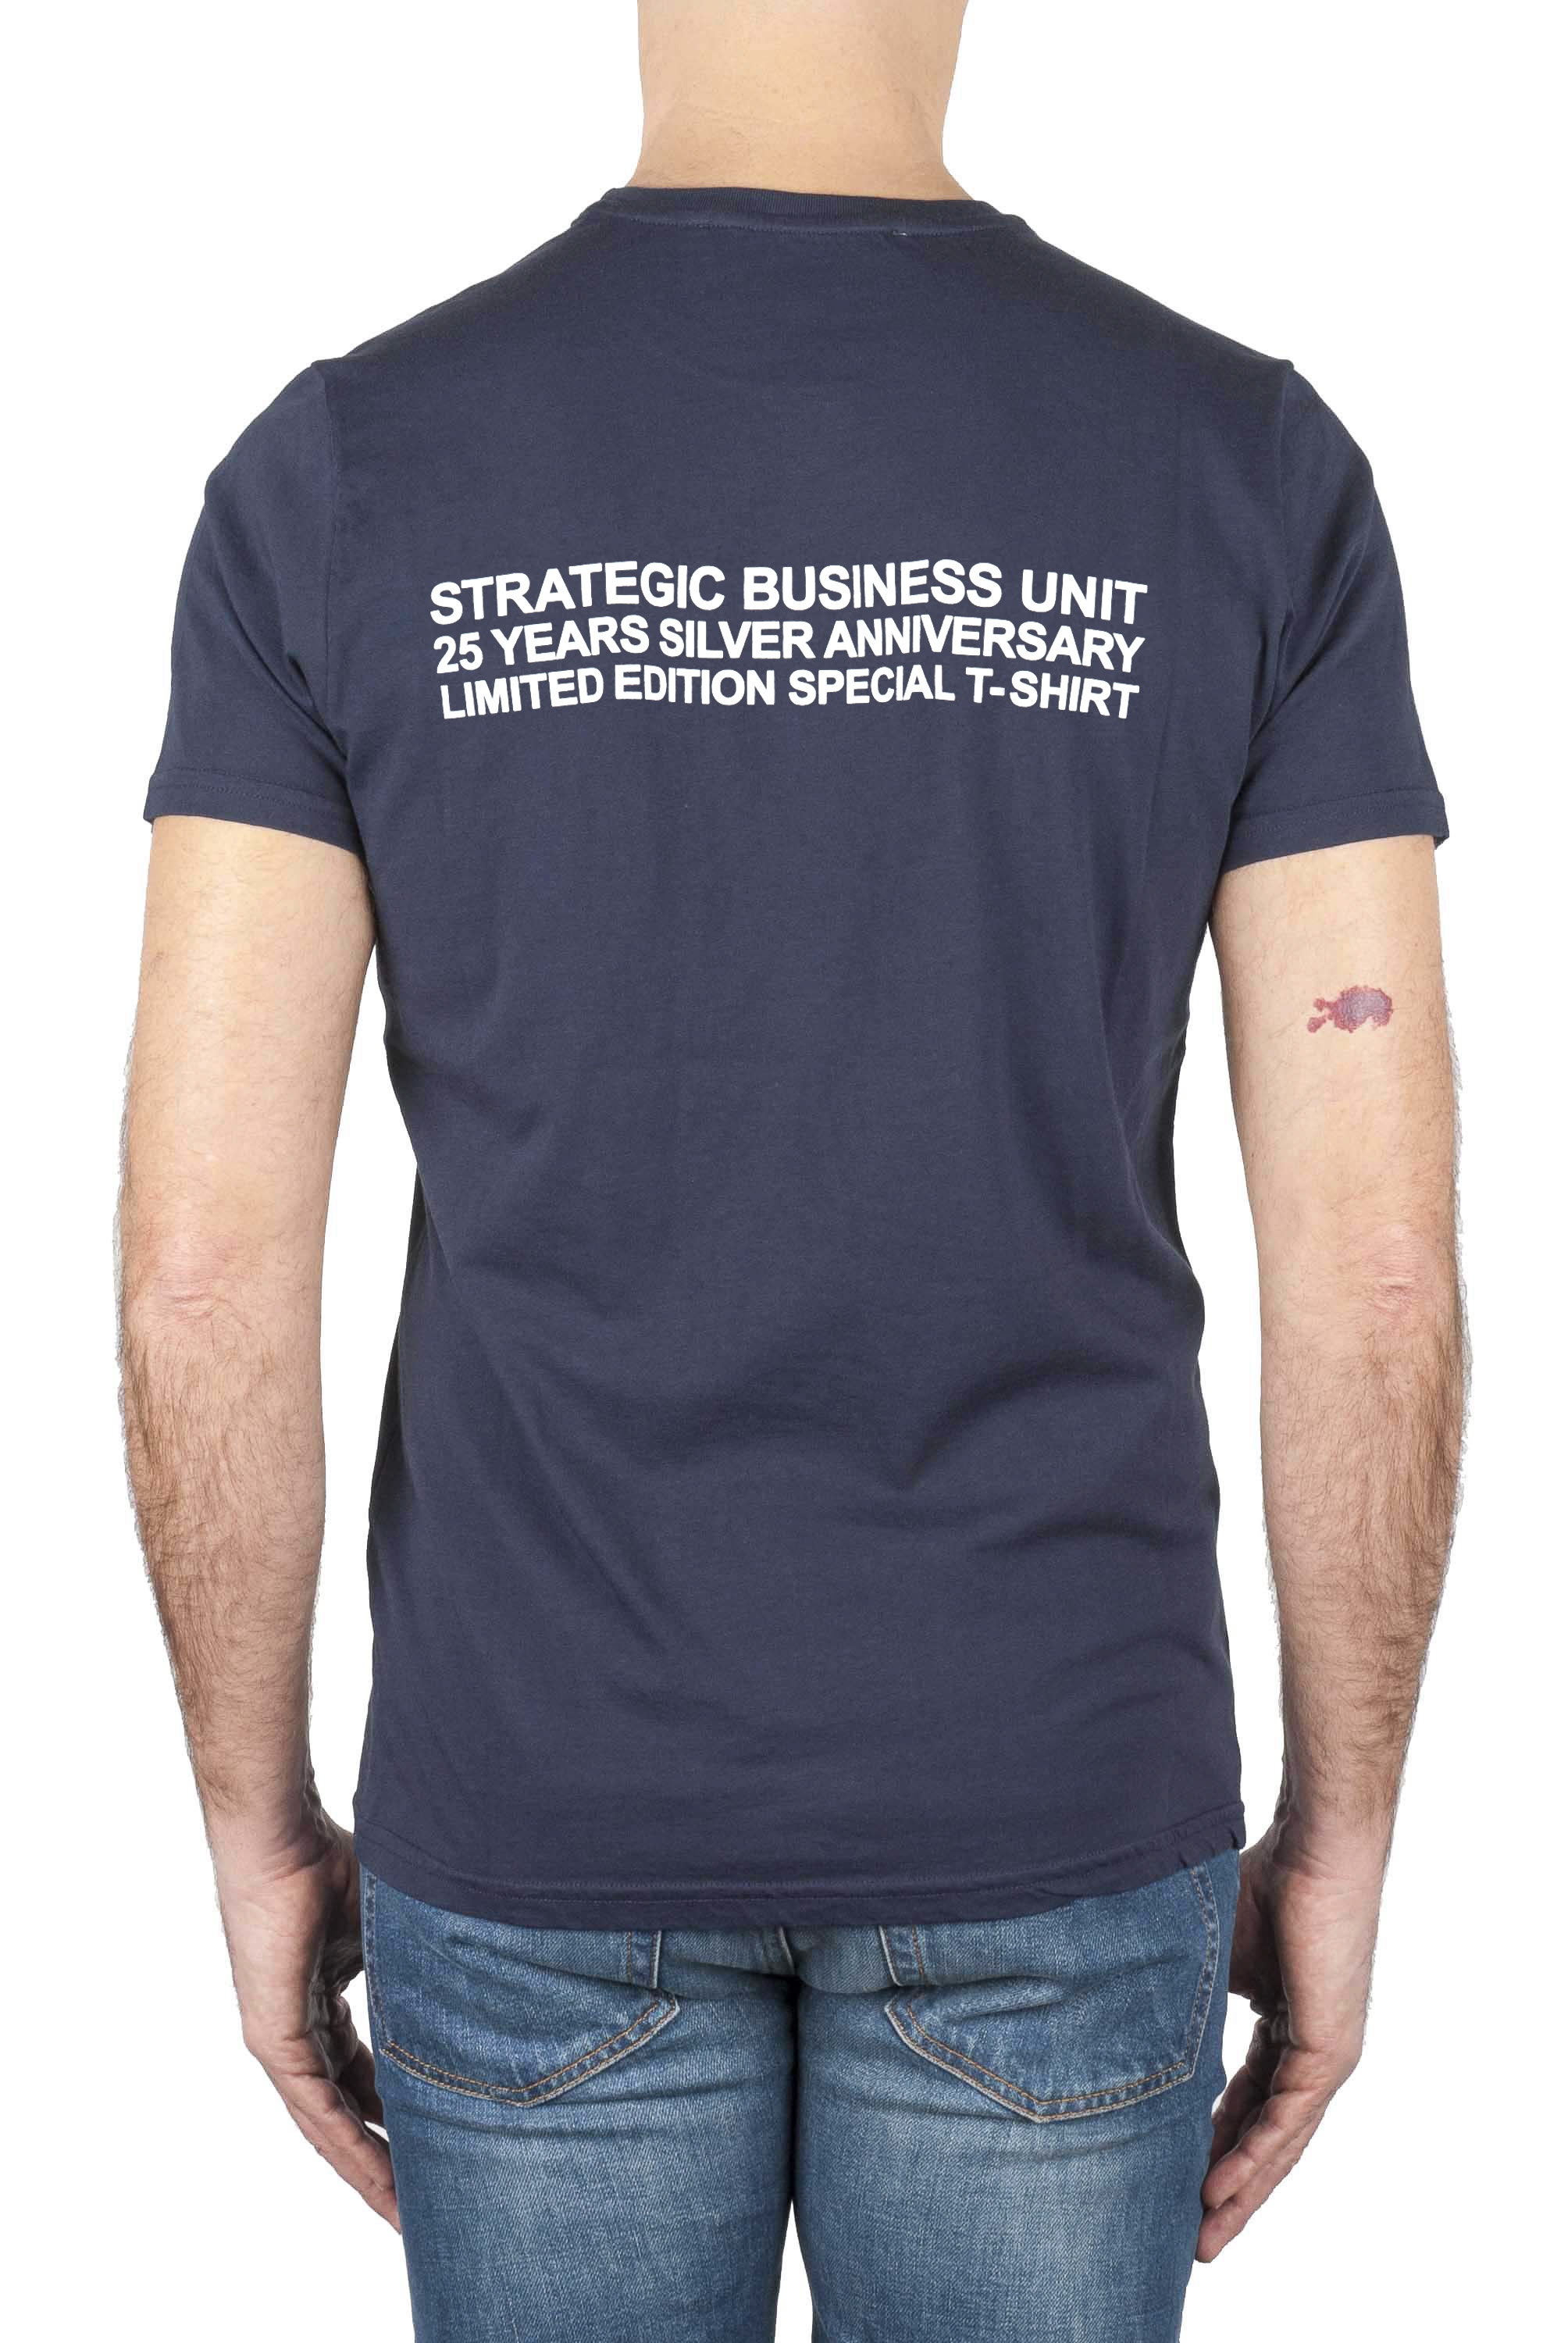 SBU 01788 Round neck navy blue t-shirt 25 years anniversary print 04